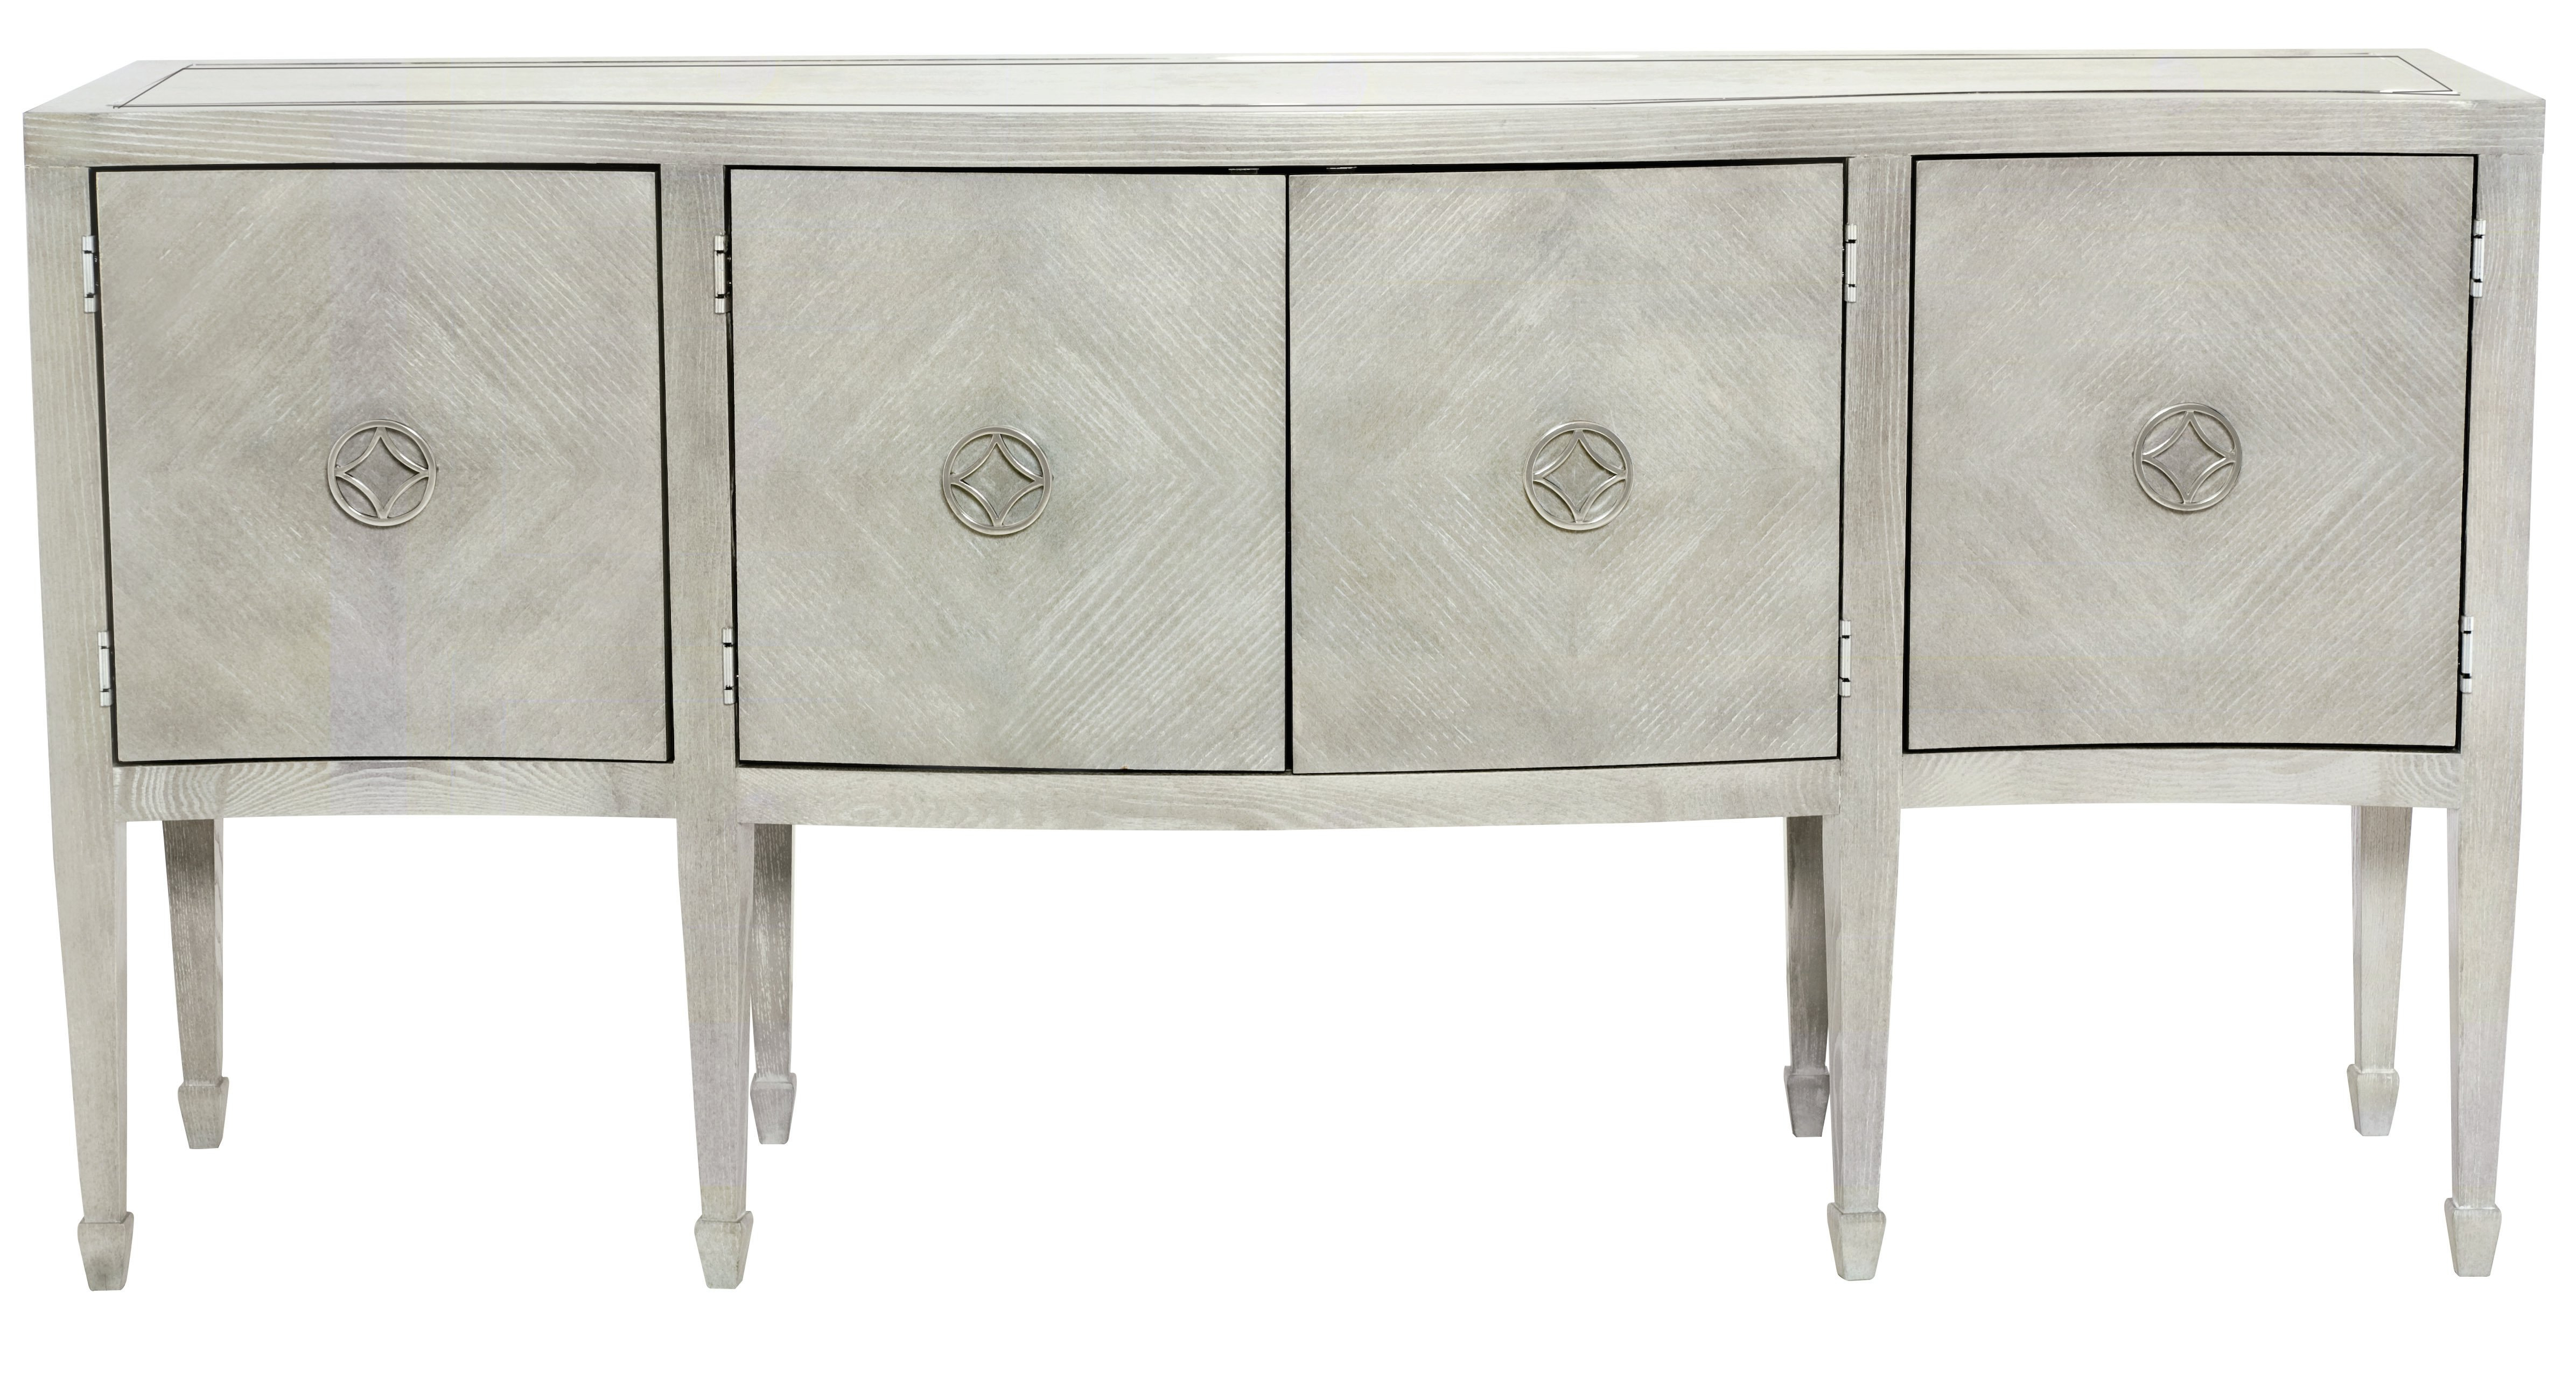 Gray Wood Sideboards & Buffets | Joss & Main Regarding Cazenovia Charnley Sideboards (View 10 of 20)